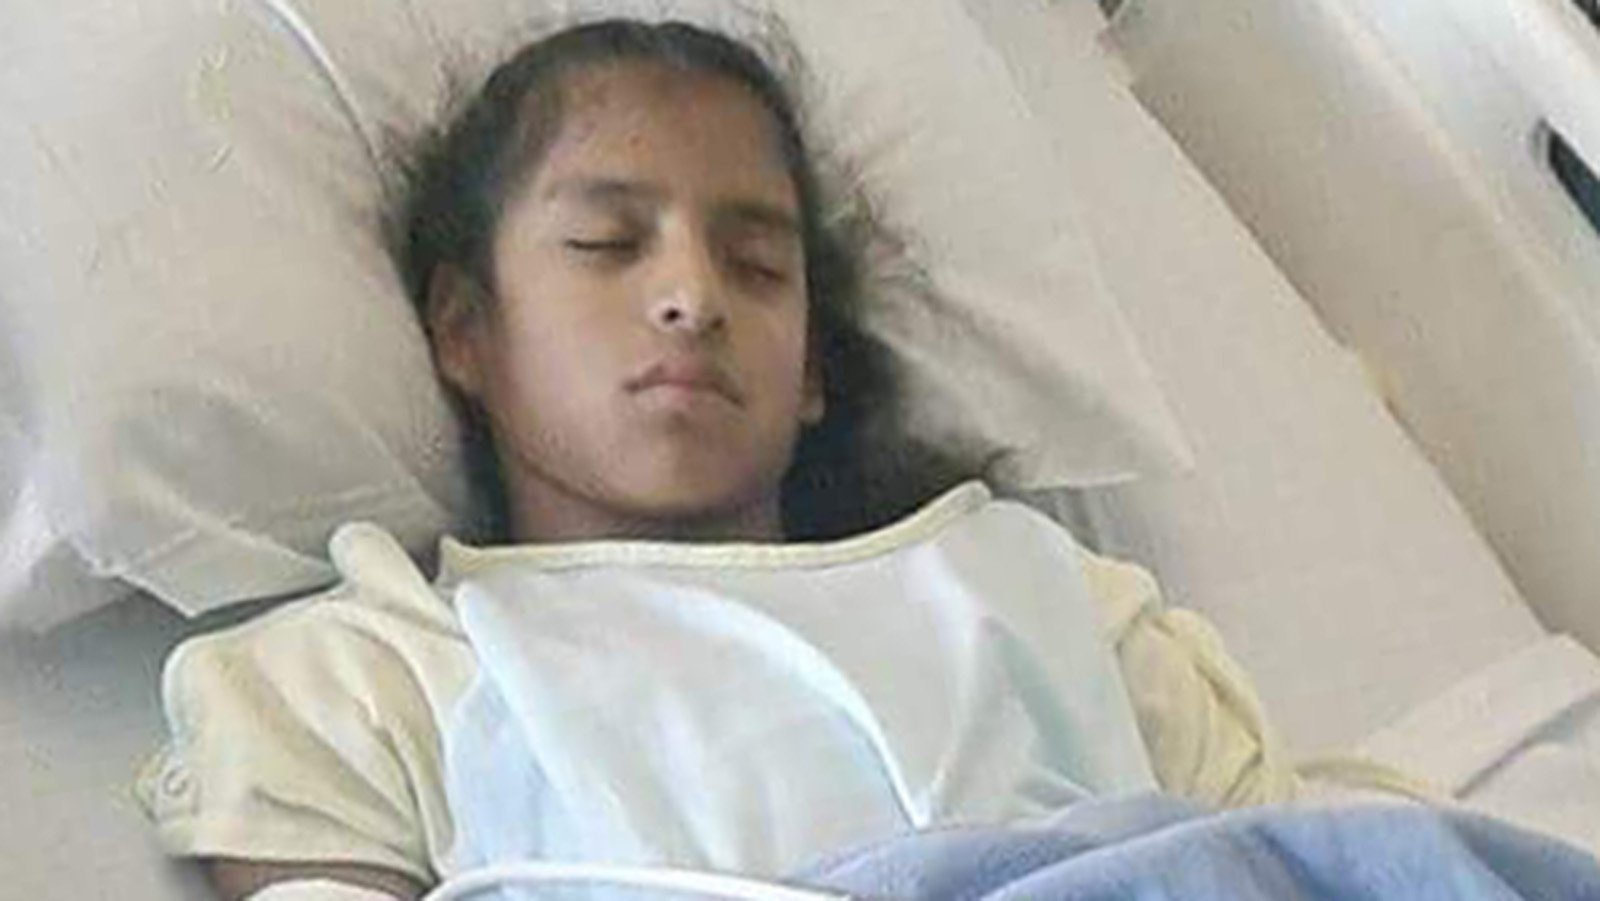 Attorney: Border Patrol Waited Outside Hospital Room For Girl